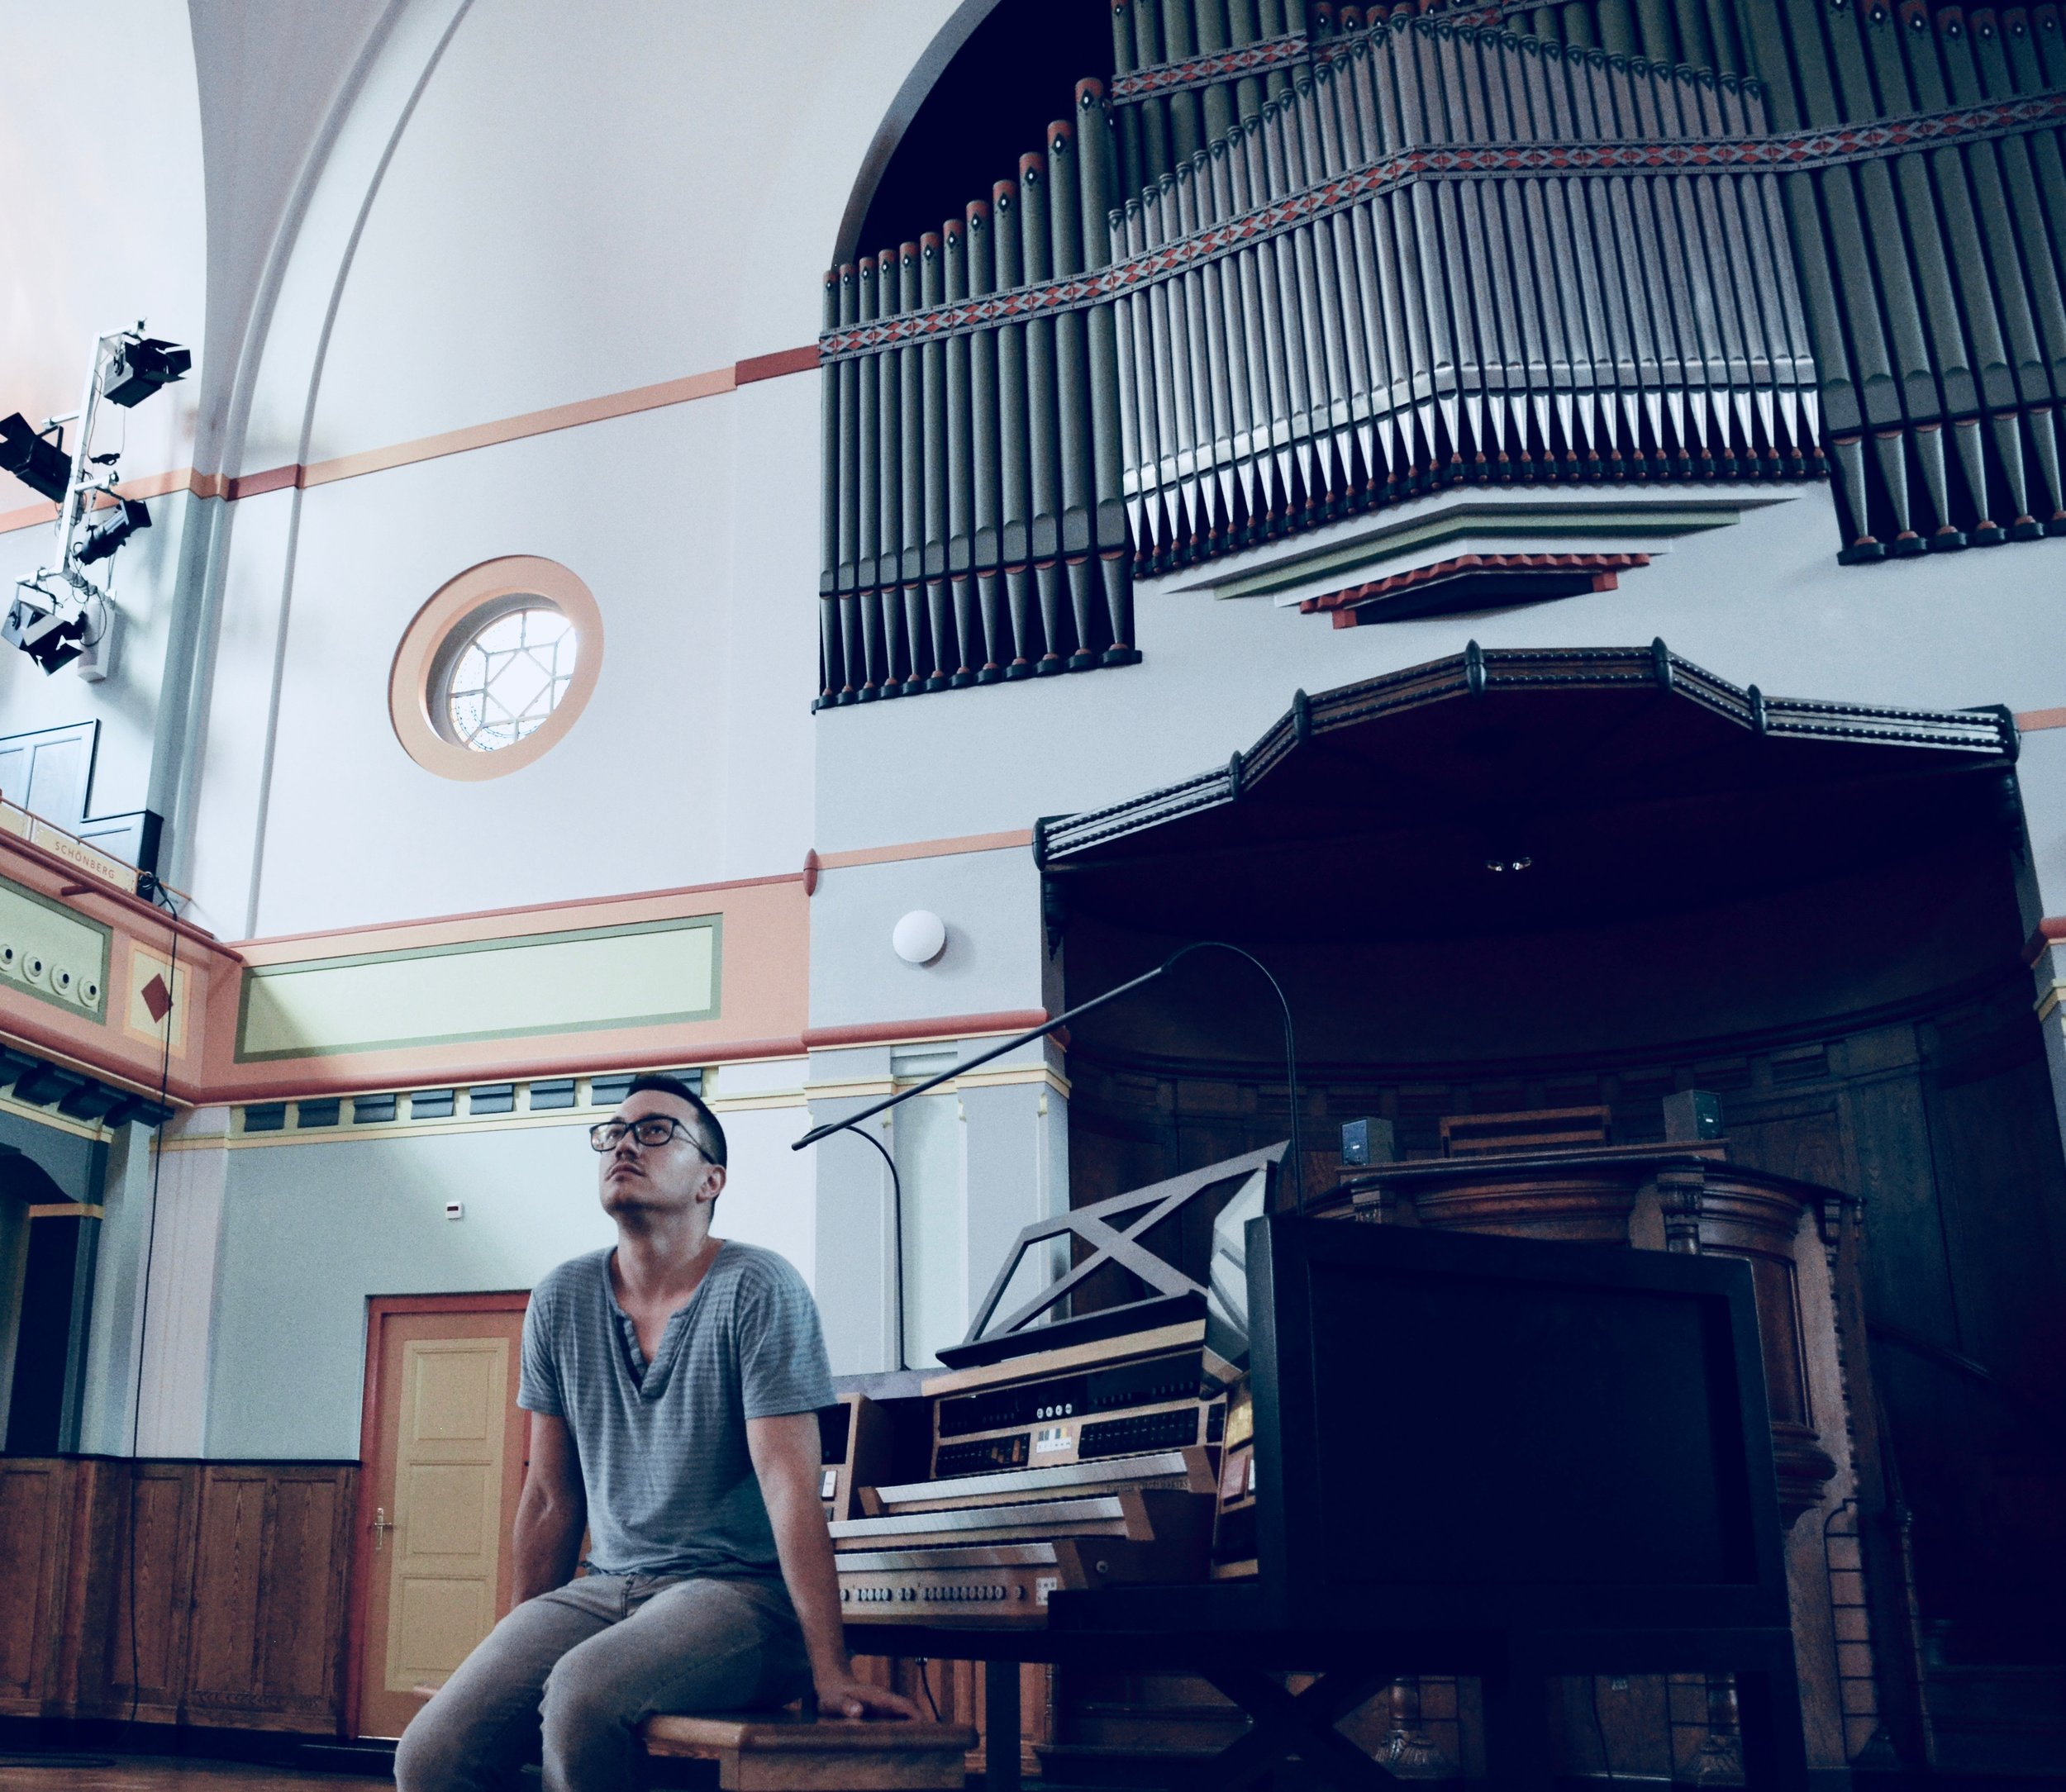 Corey De Tar listens intently, with the façade of the Sauer organ at Orgelpark behind.